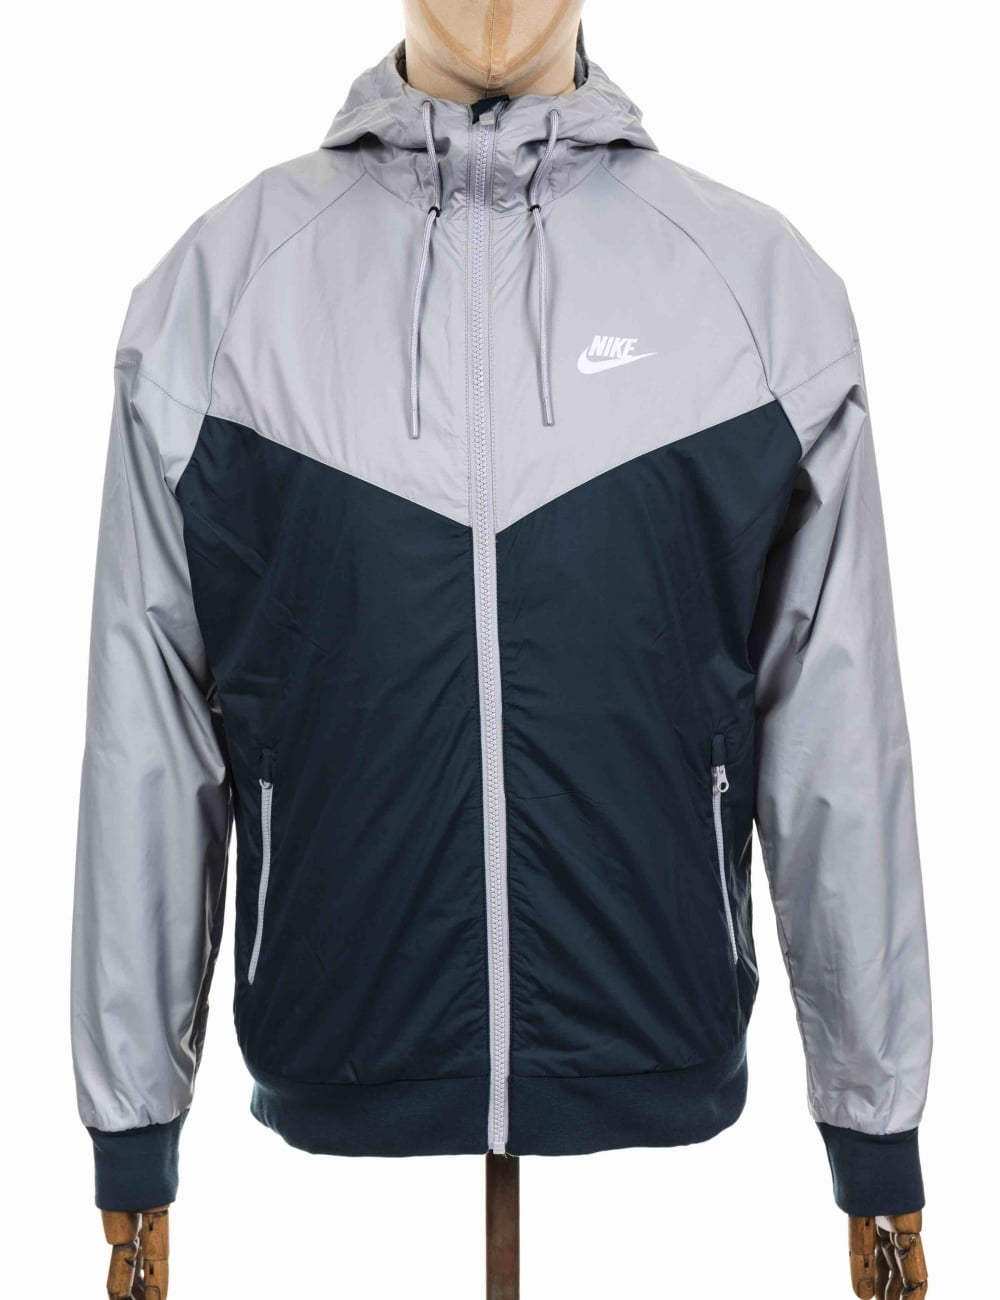 Nike NSW Windbreaker Jacket - Armory Navy Wolf Grey - Clothing from ... c027607c1